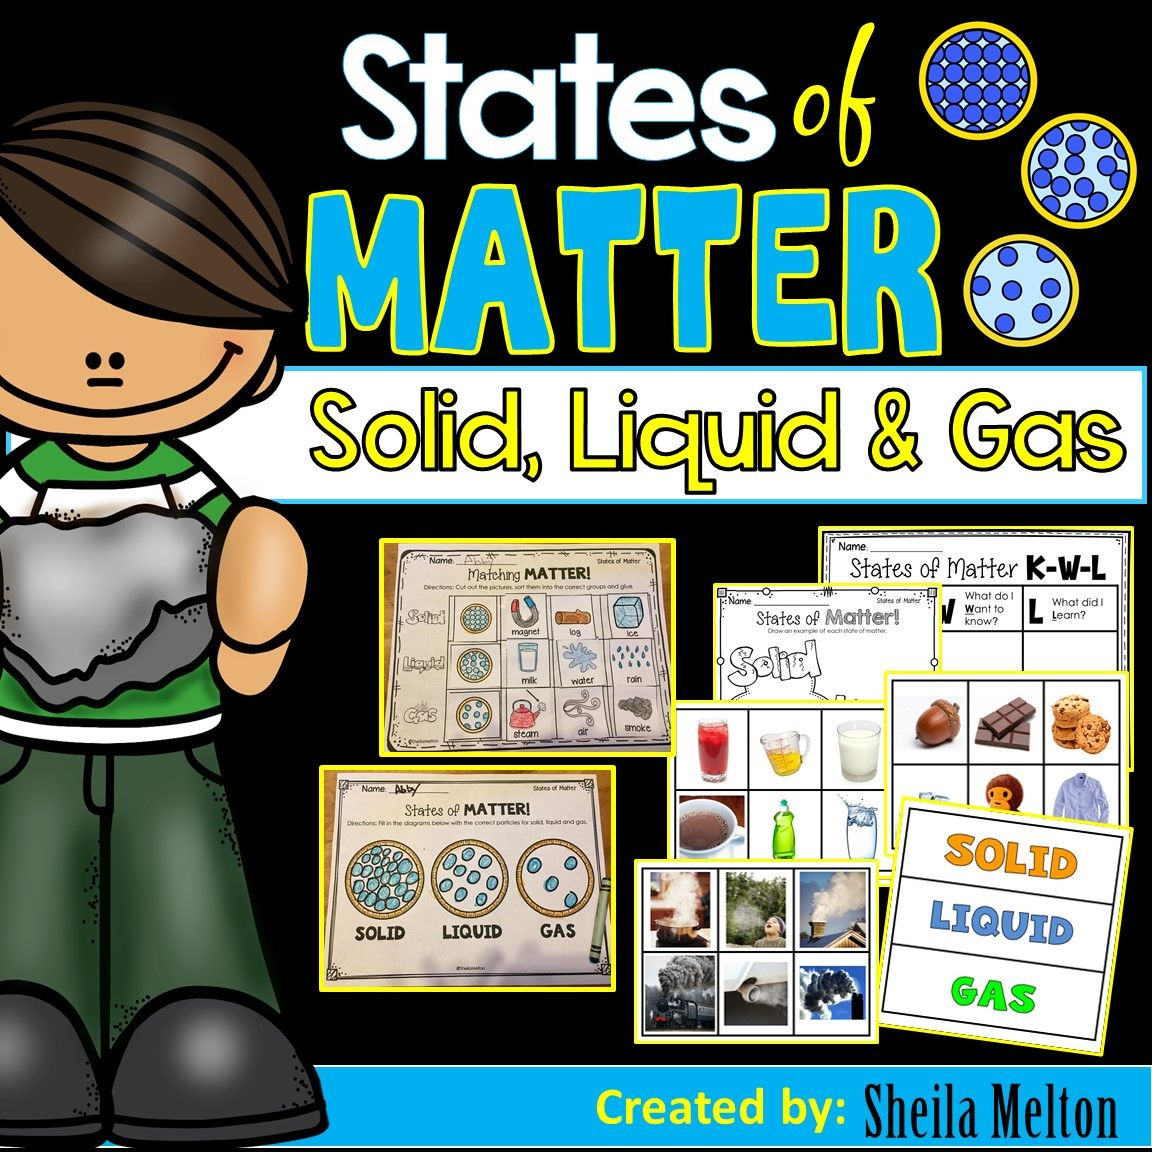 States Of Matter Solid Liquid Gas